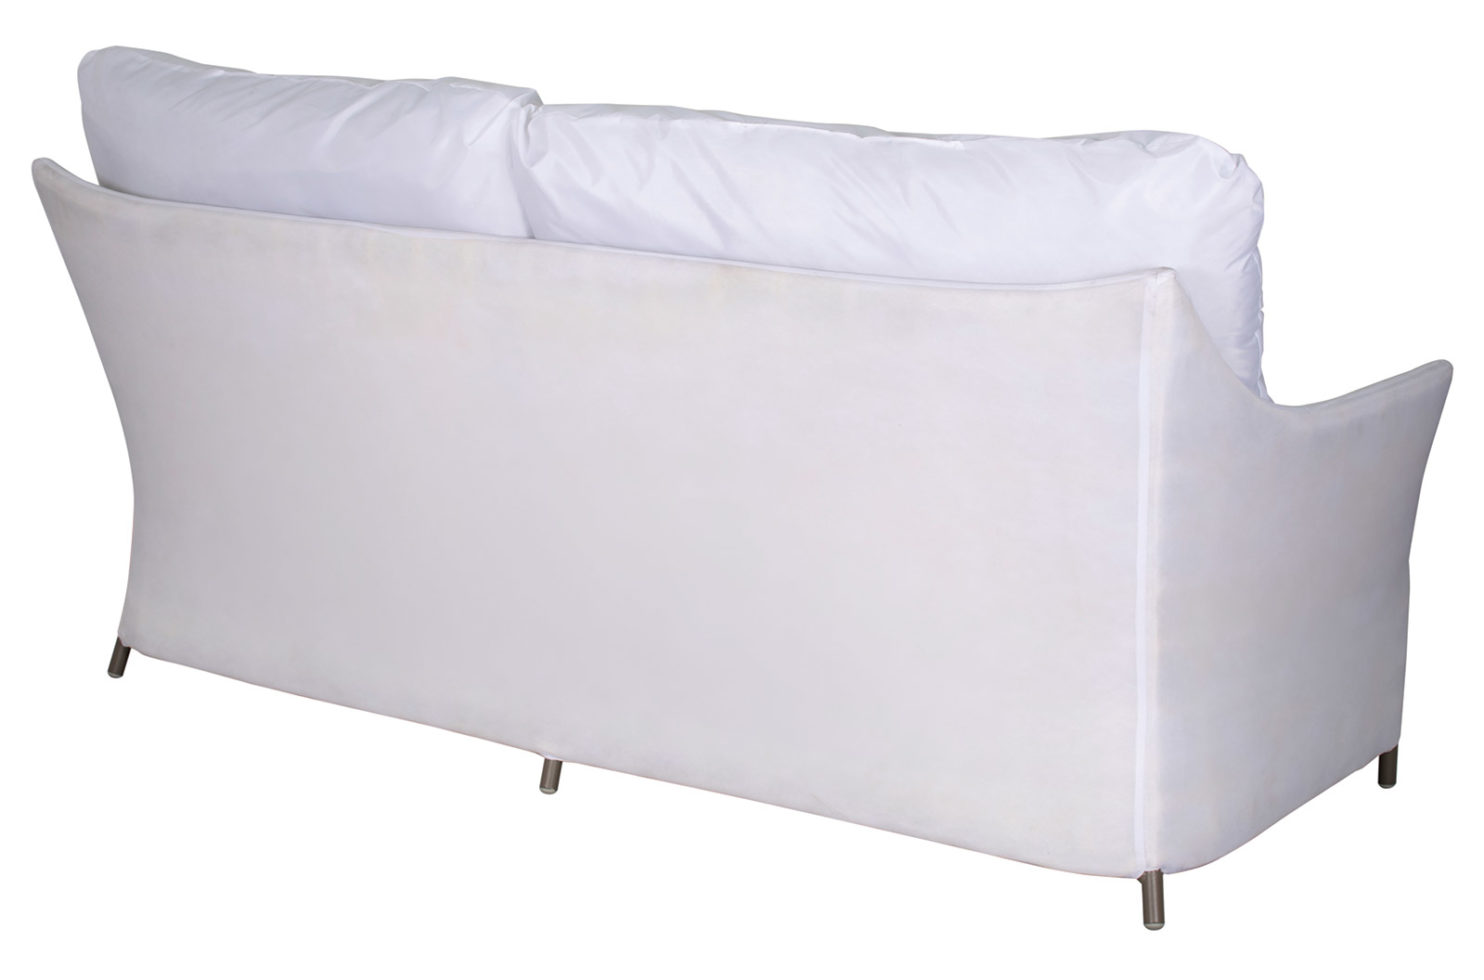 capri sofa frame 620FT094P2 1 3Q back